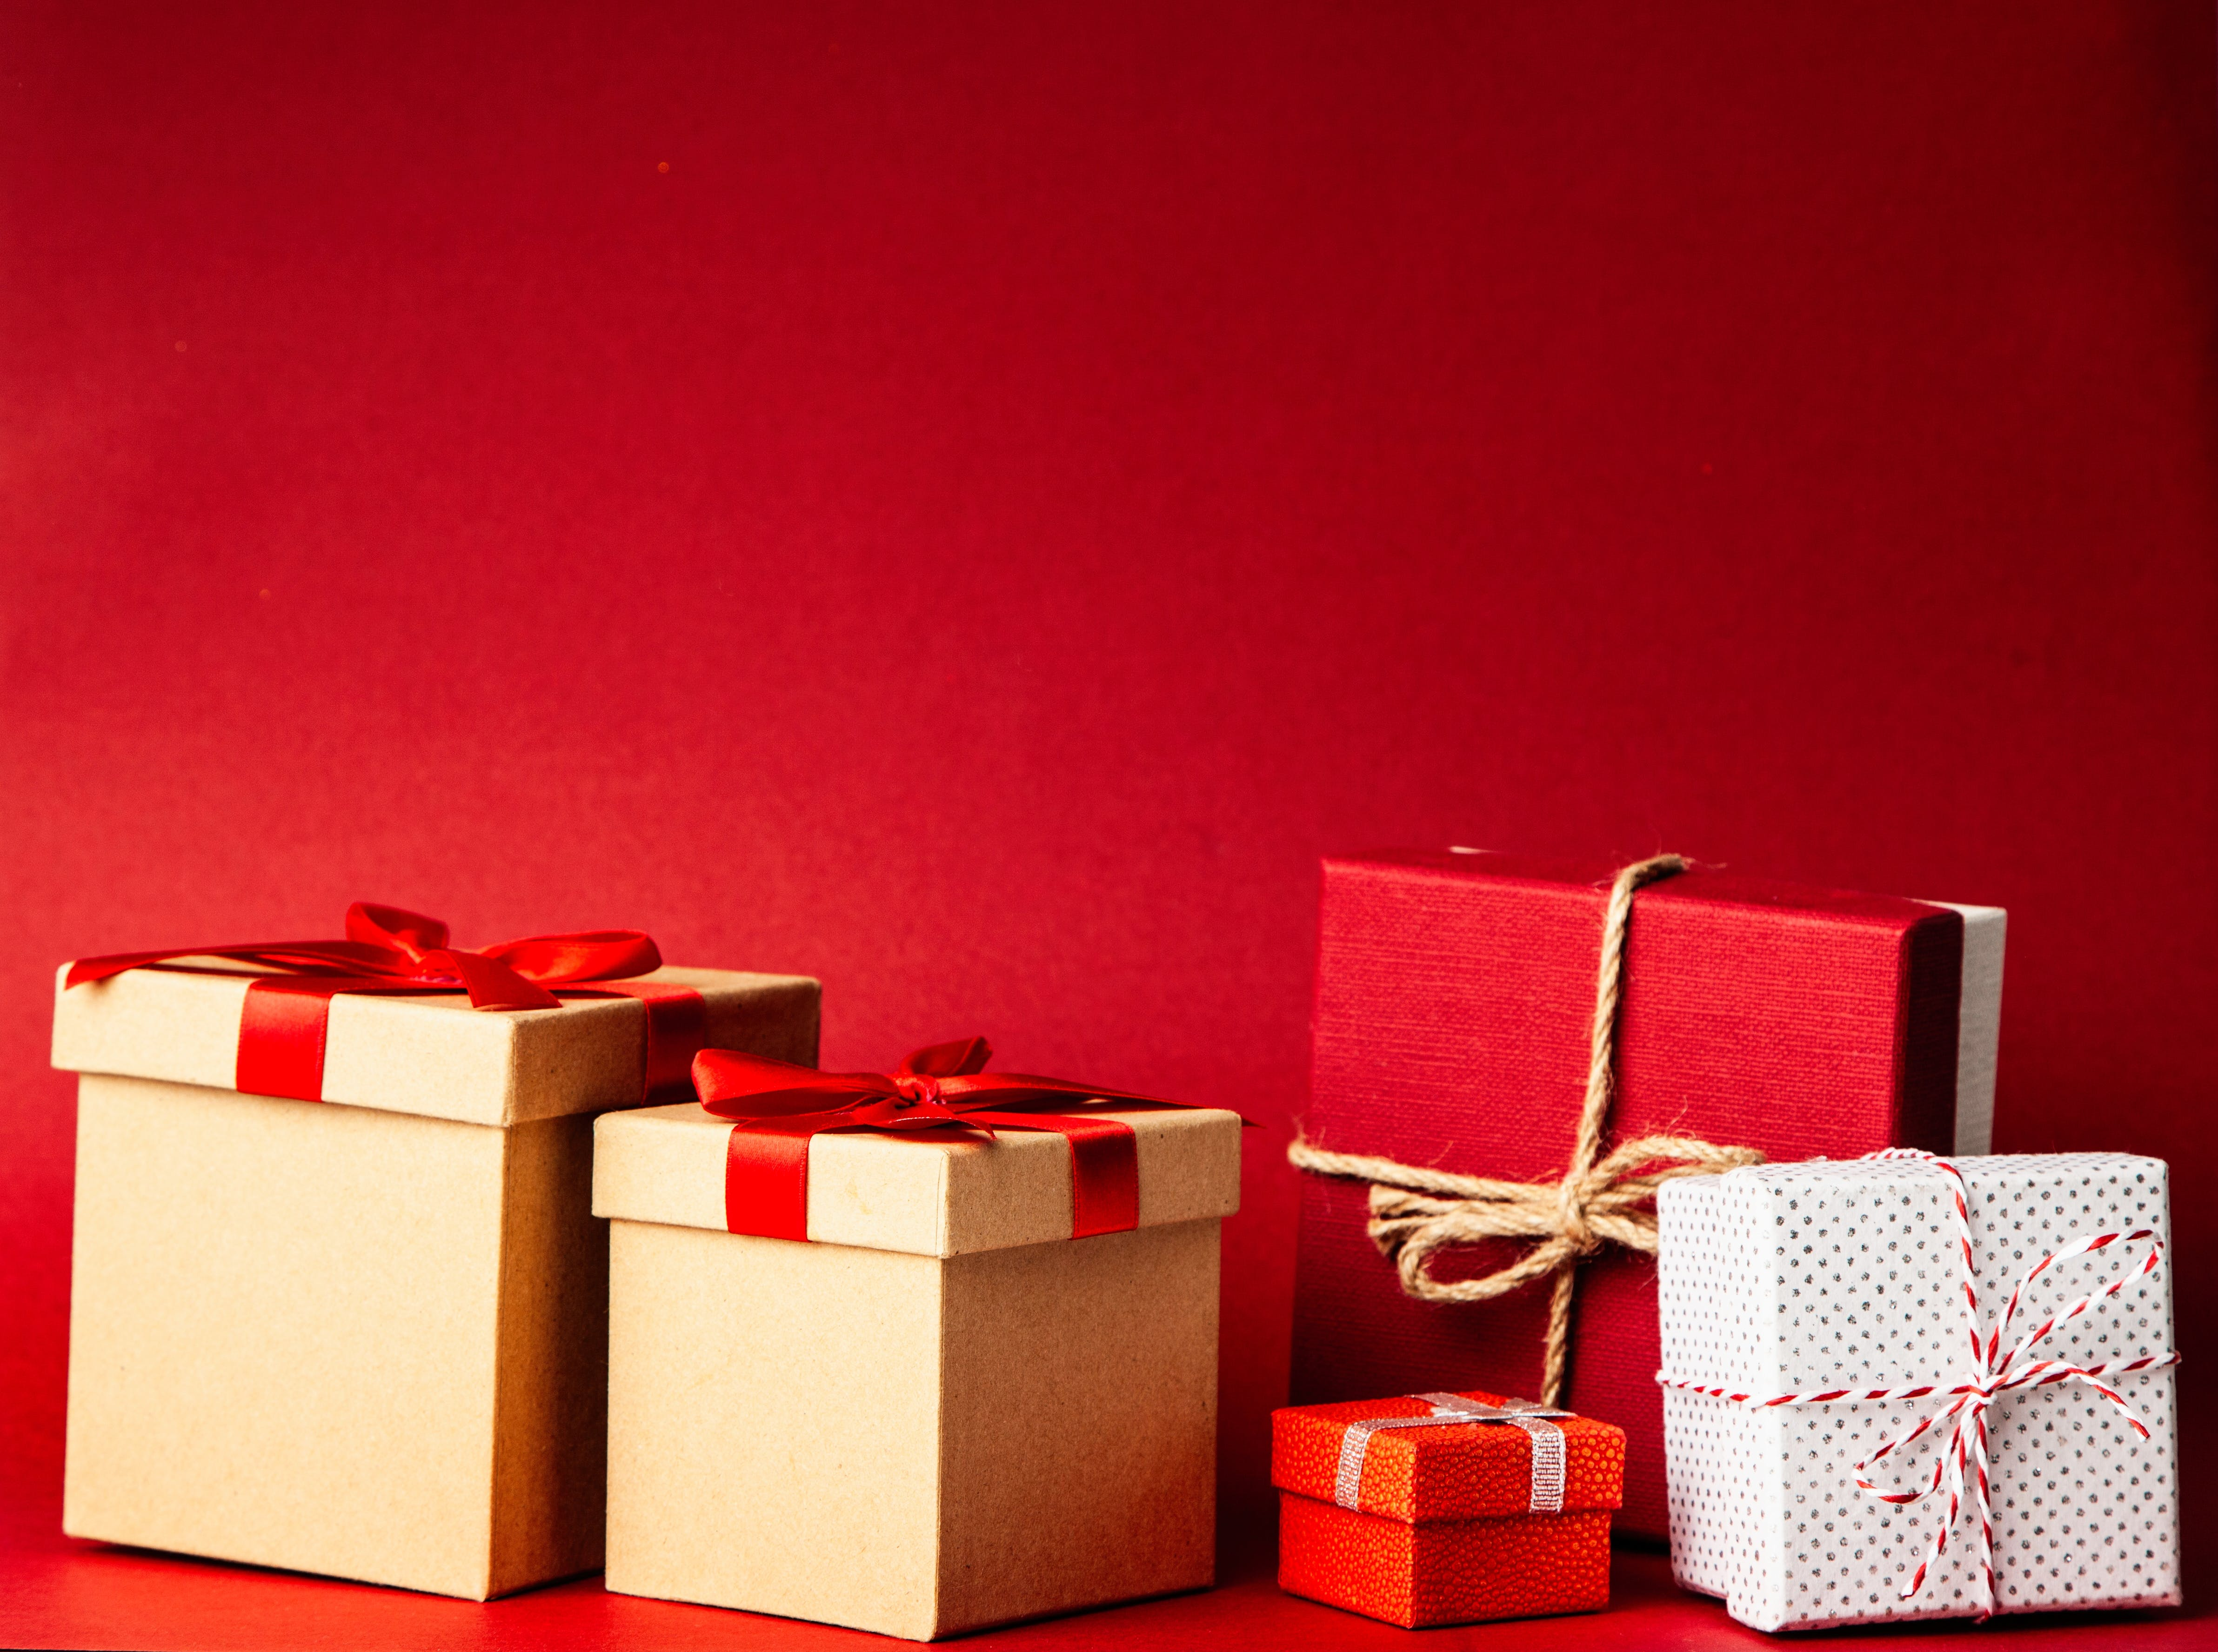 Several Gift Boxes